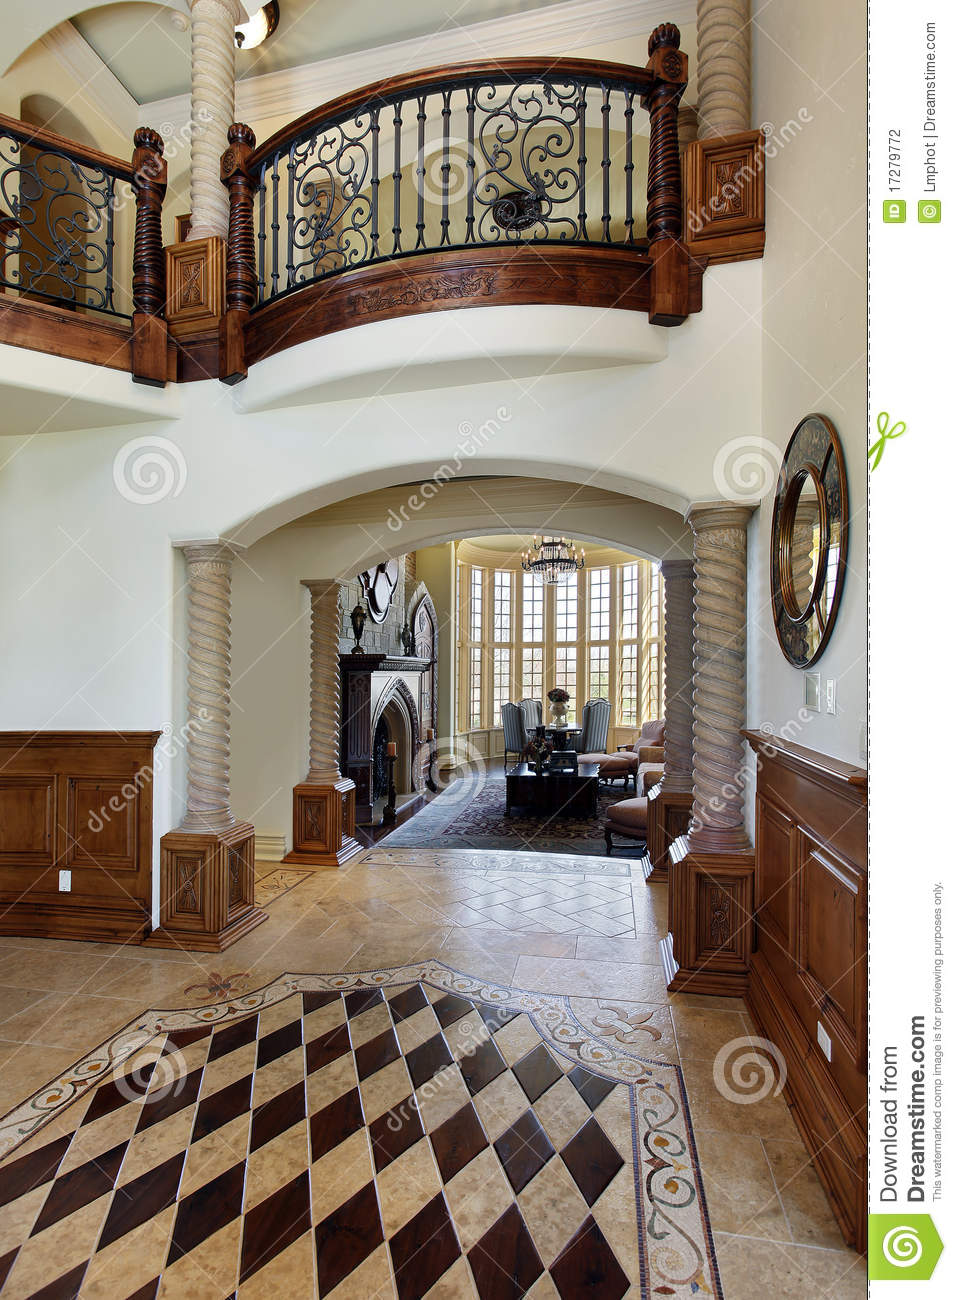 Foyer with floor design stock photography   image: 17279772